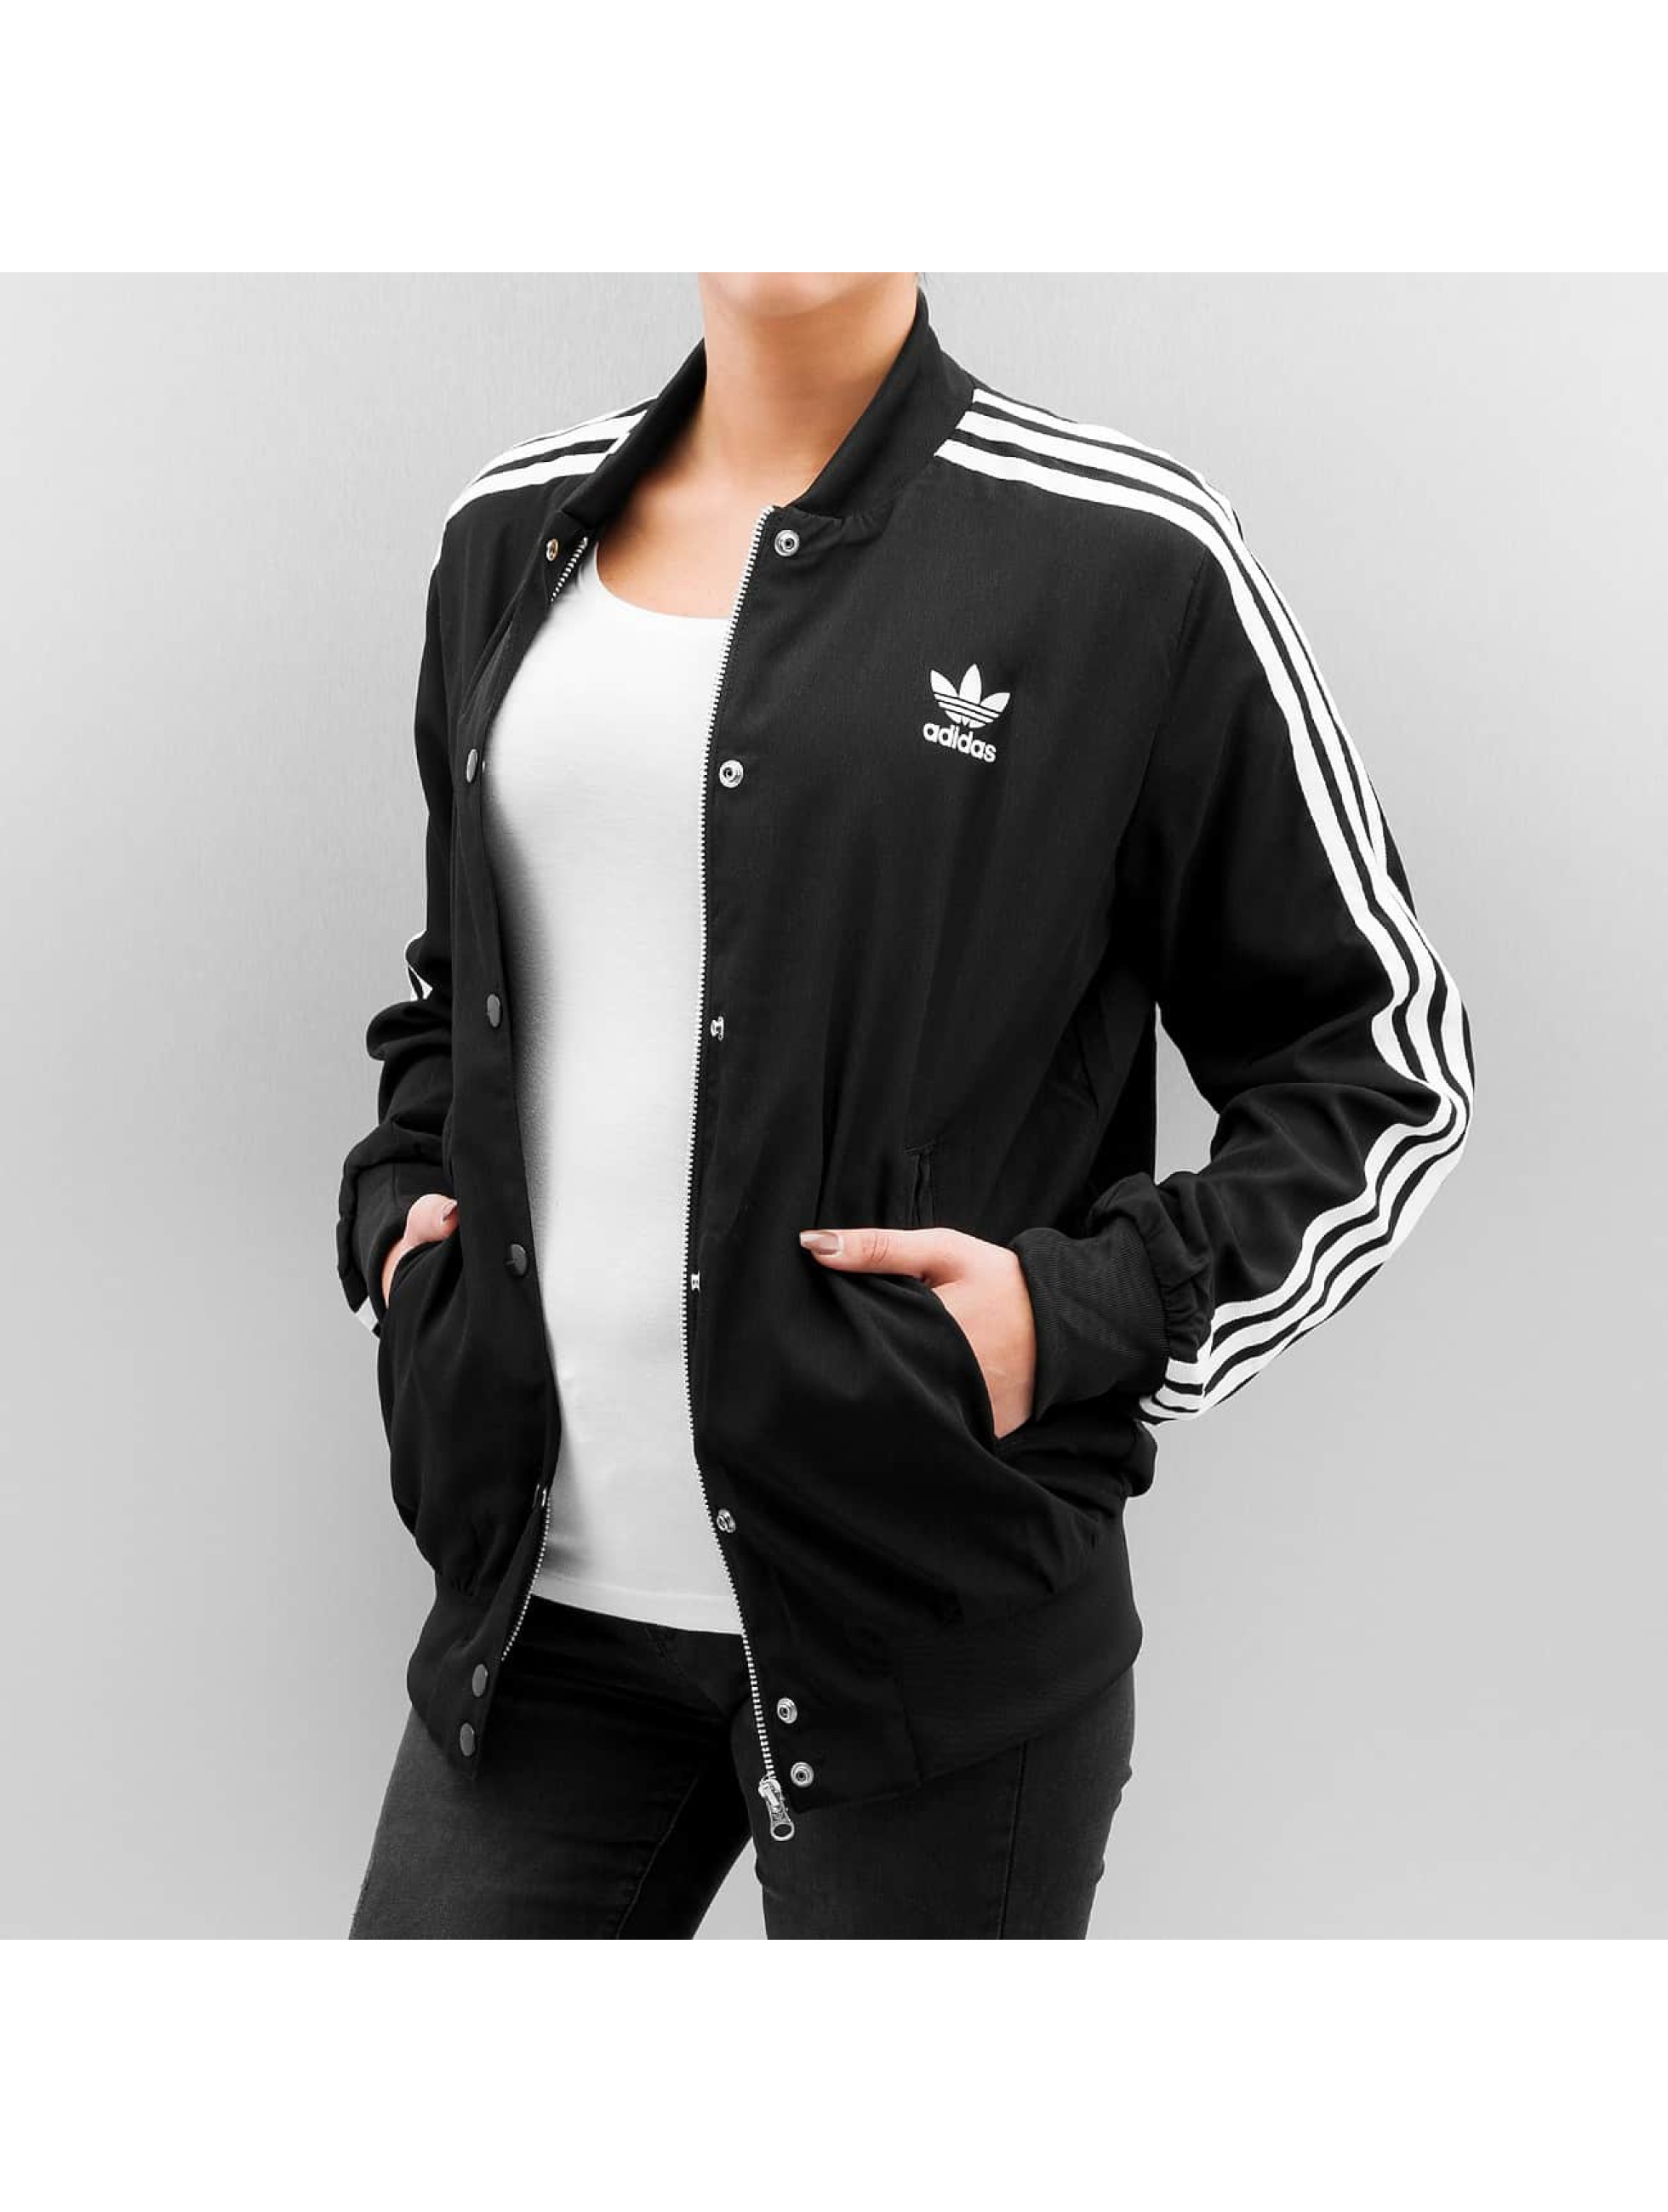 adidas originals 3 stripes noir femme bomber 302590. Black Bedroom Furniture Sets. Home Design Ideas